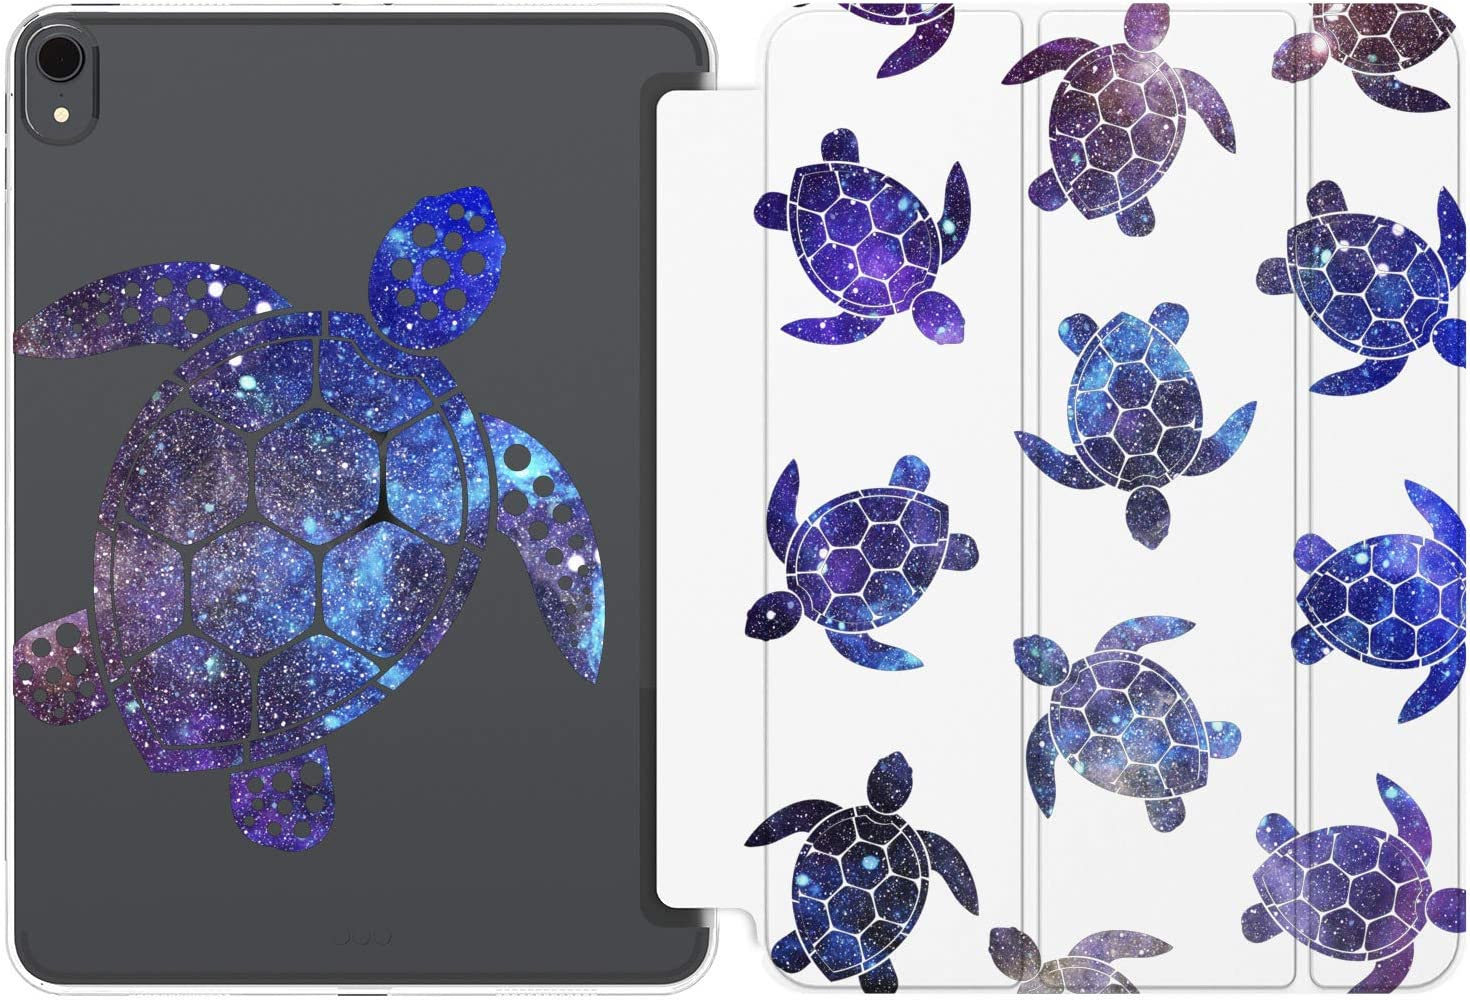 Cavka Case for Apple iPad 10.2 8th Gen 12.9 Pro 11 10.5 9.7 Air 3 Mini 5 4 3 2 1 2019/18 Turtle Cute Girl Space Galaxy Fish Print Stars Smart Cover Animals Protective Cosmic Pattern Lightweight